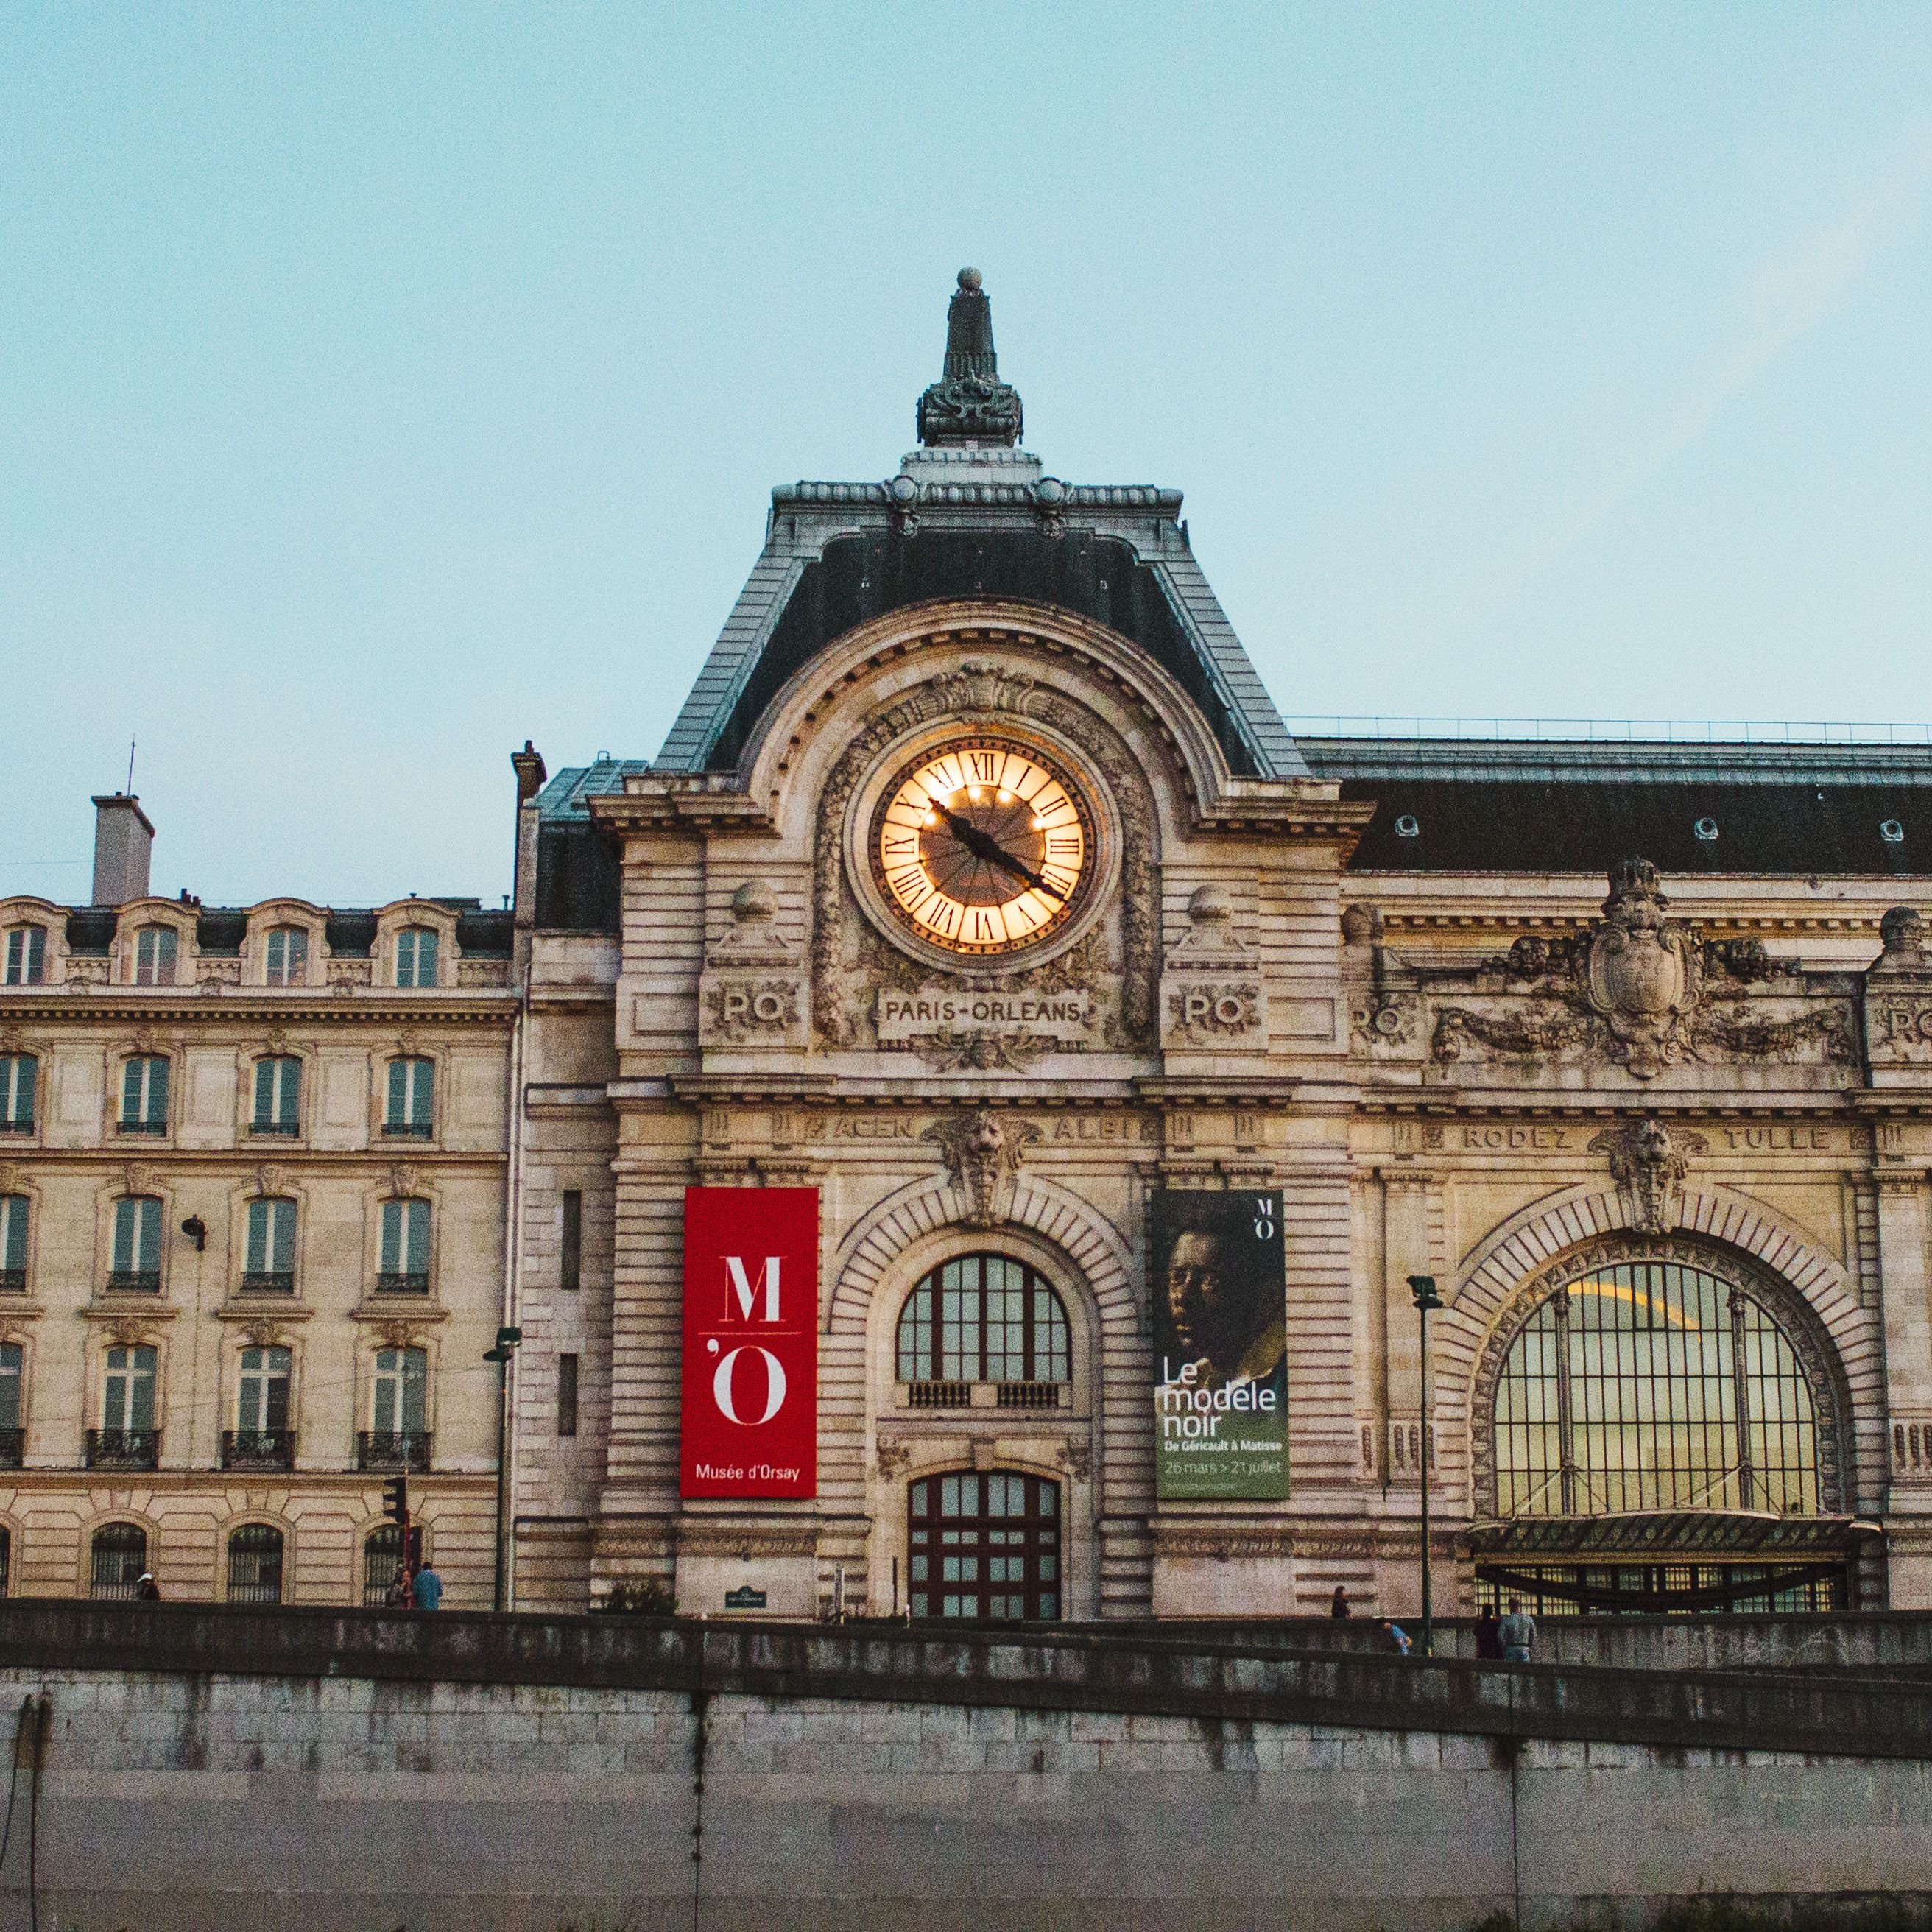 Top 5 Tips for Enjoying Paris' Musee d'Orsay